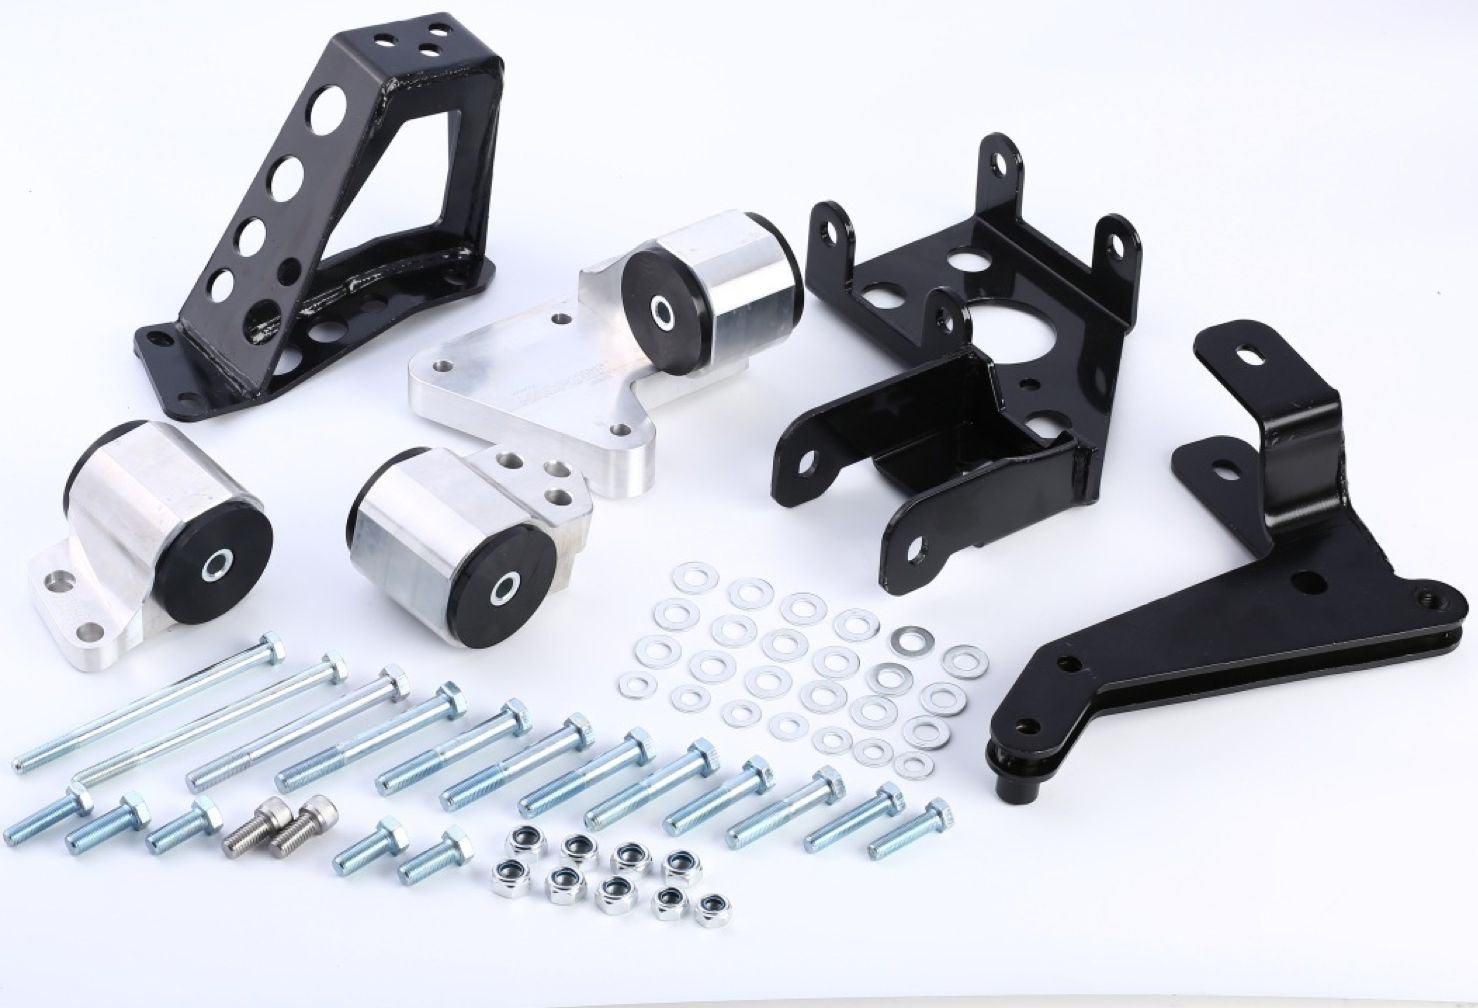 K-SERIES SWAP BILLET ALUMINUM ENGINE MOUNT KIT 92 - 95 HONDA CIVIC EG 94 - 01 DC